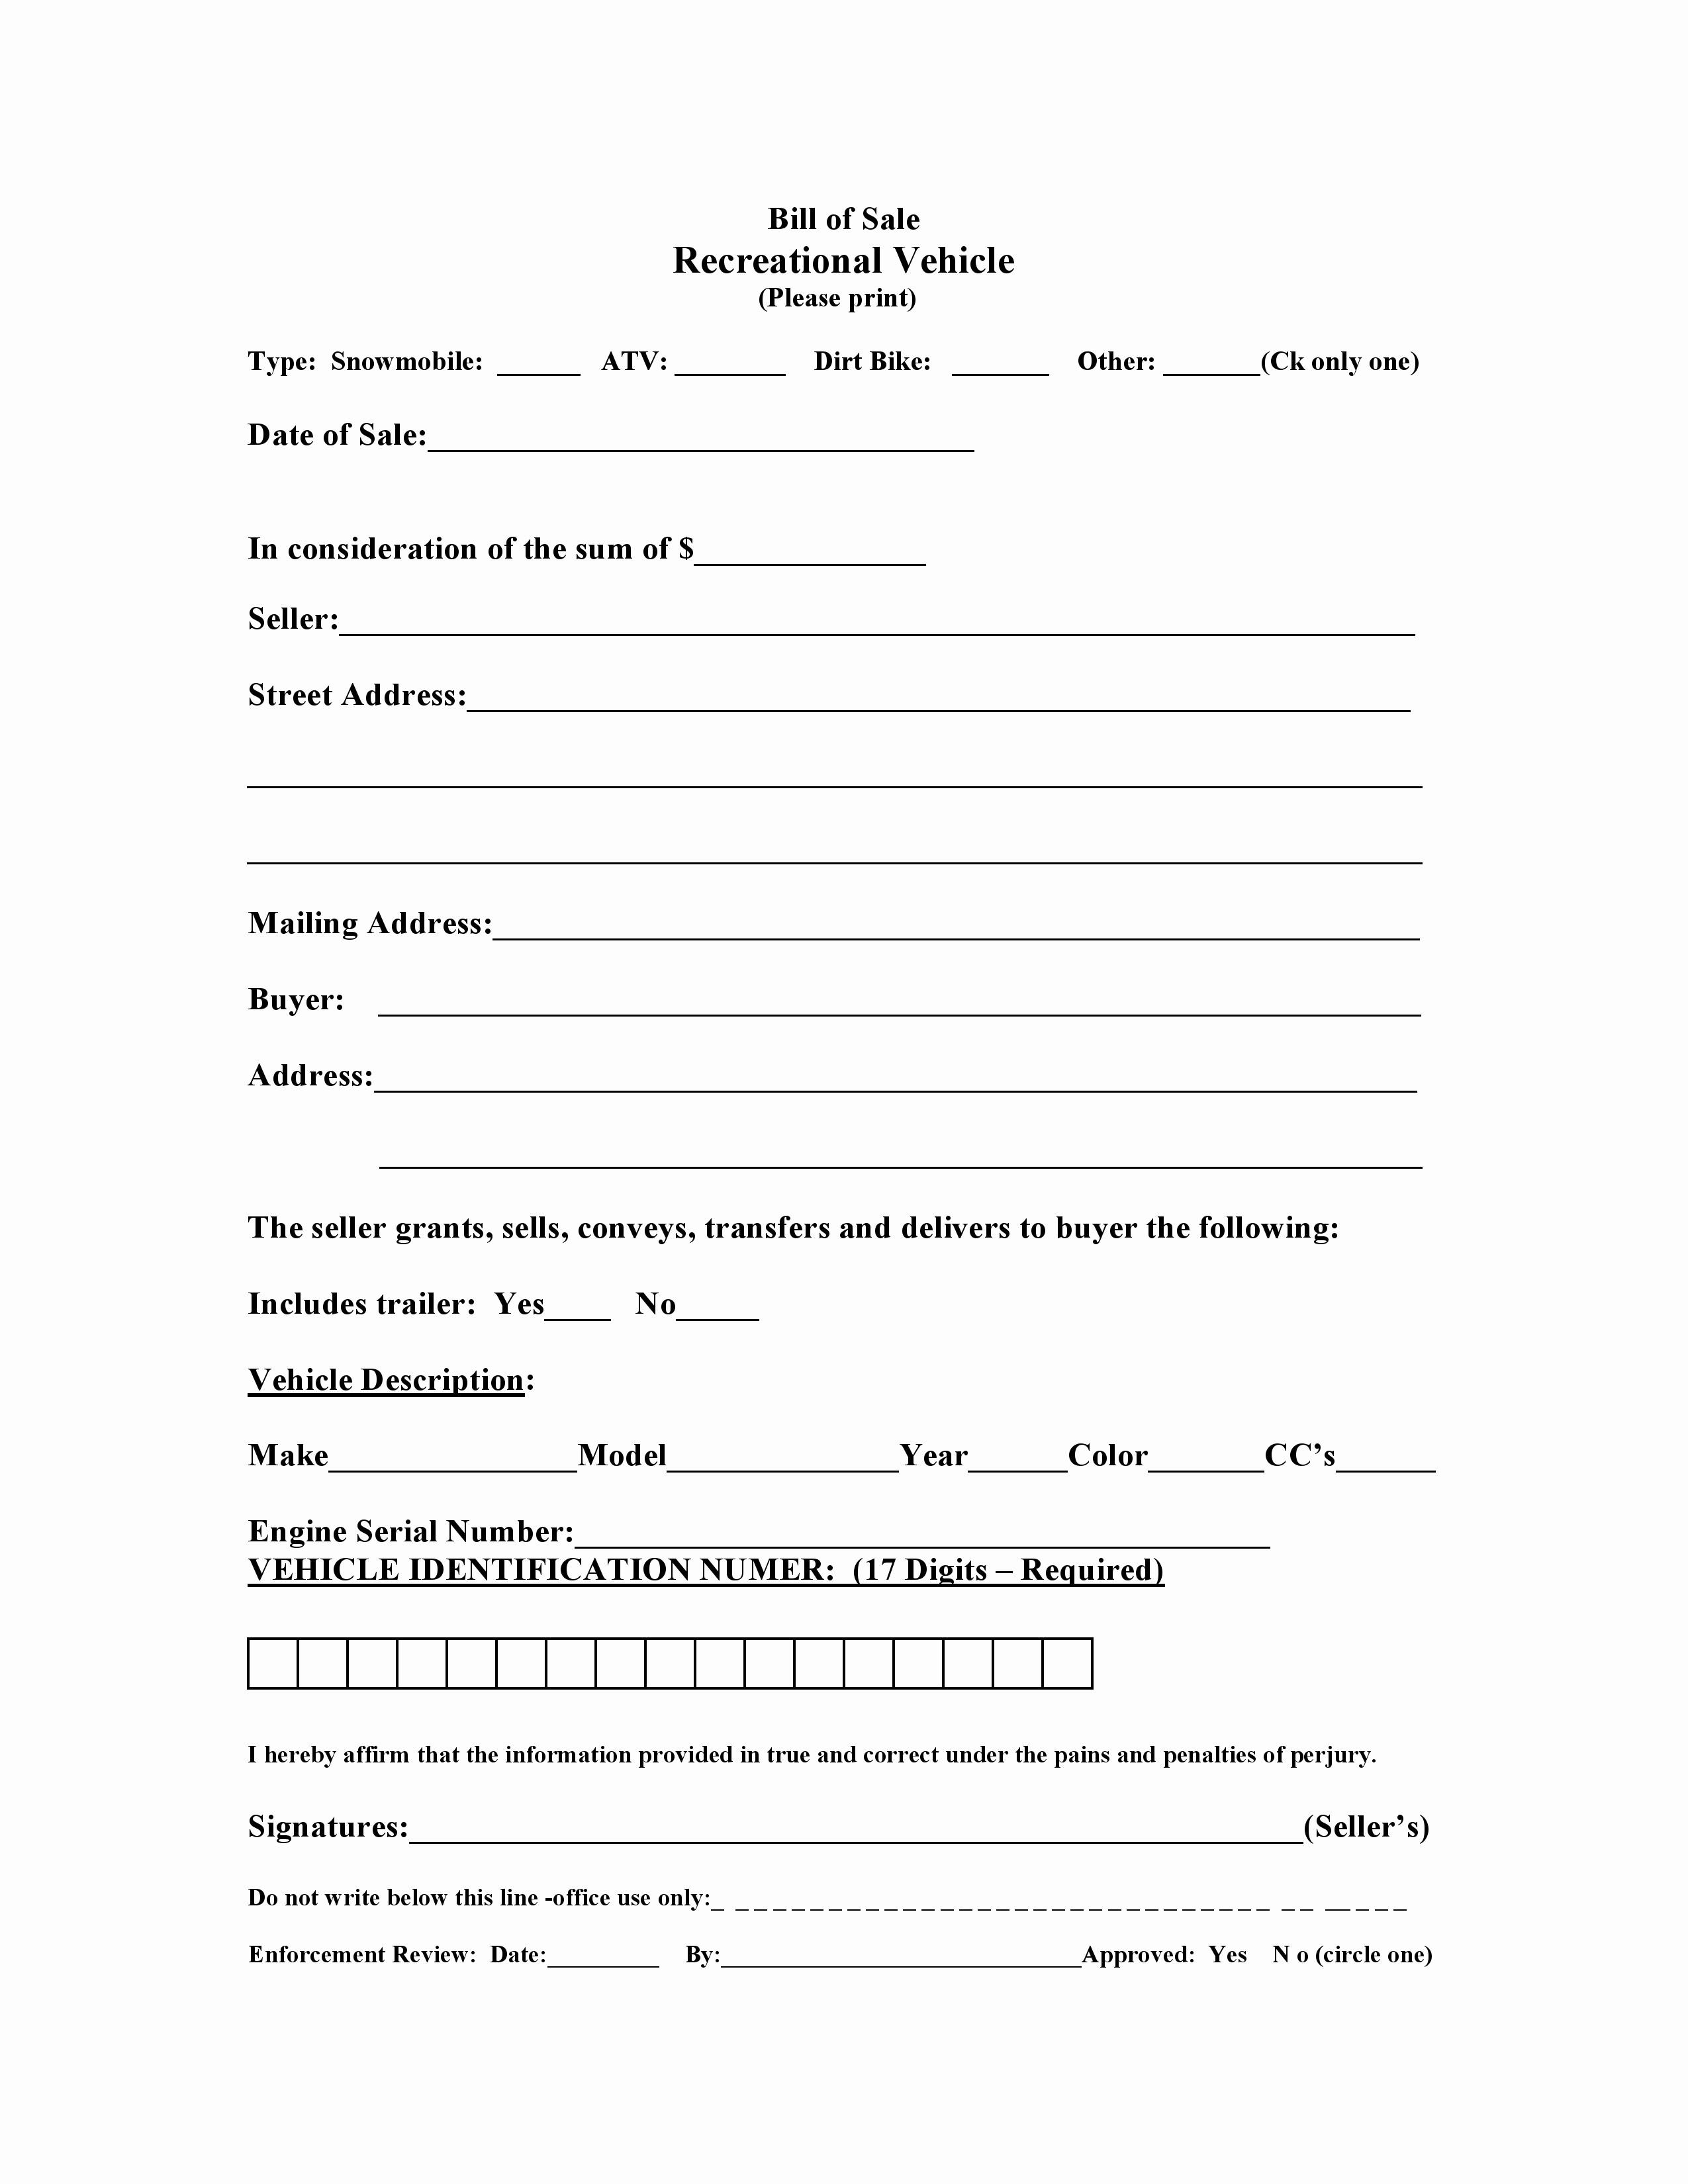 Form Of Bill Of Sale Inspirational Free Massachusetts Recreational Vessel Vehicle Bill Of